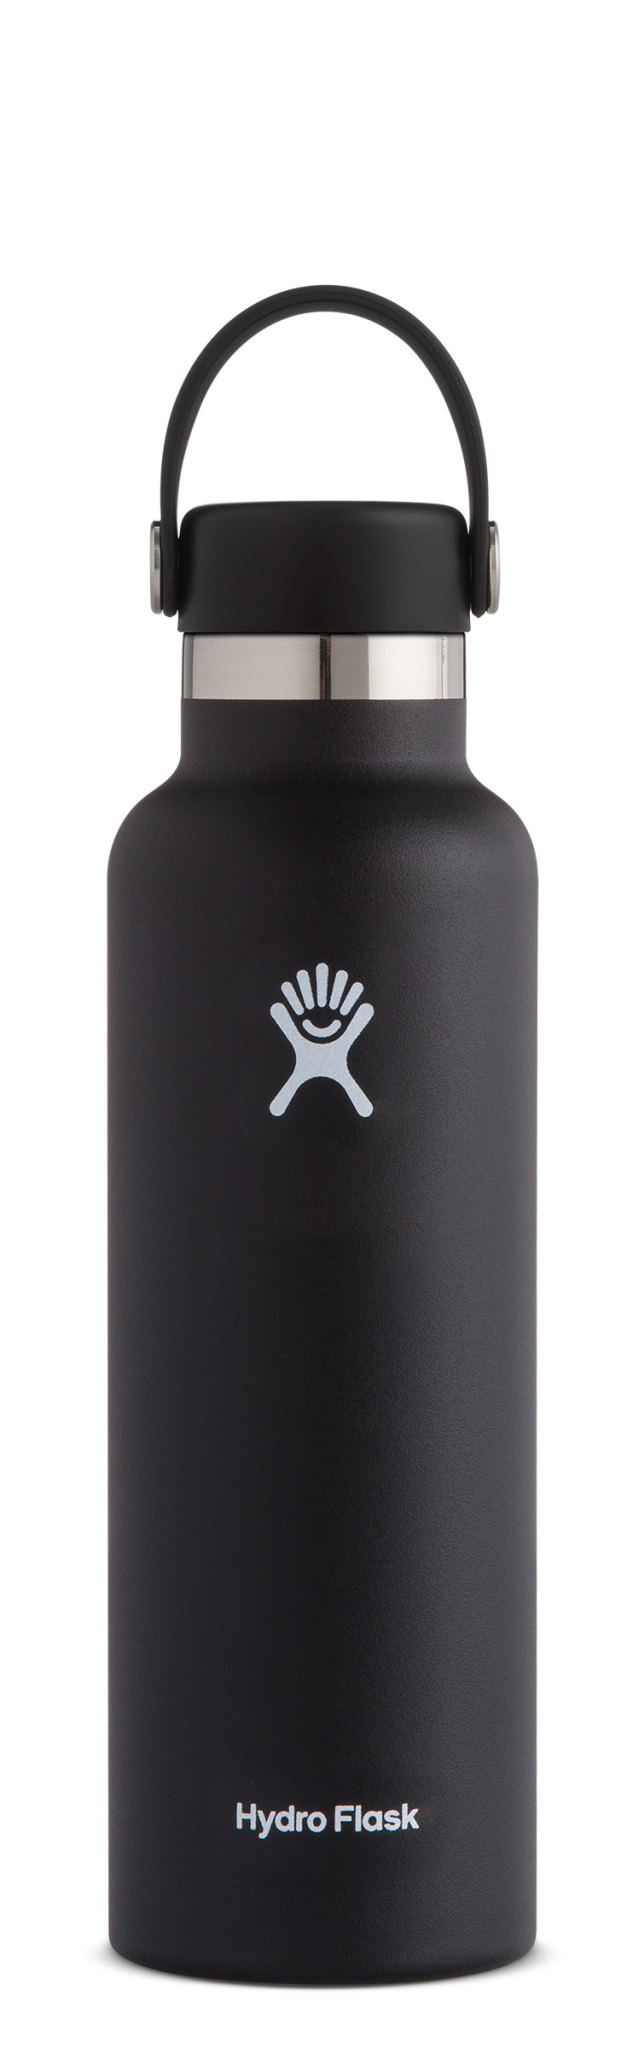 Hydro Flask 21oz Standard Mouth with Standard Flex Cap-3